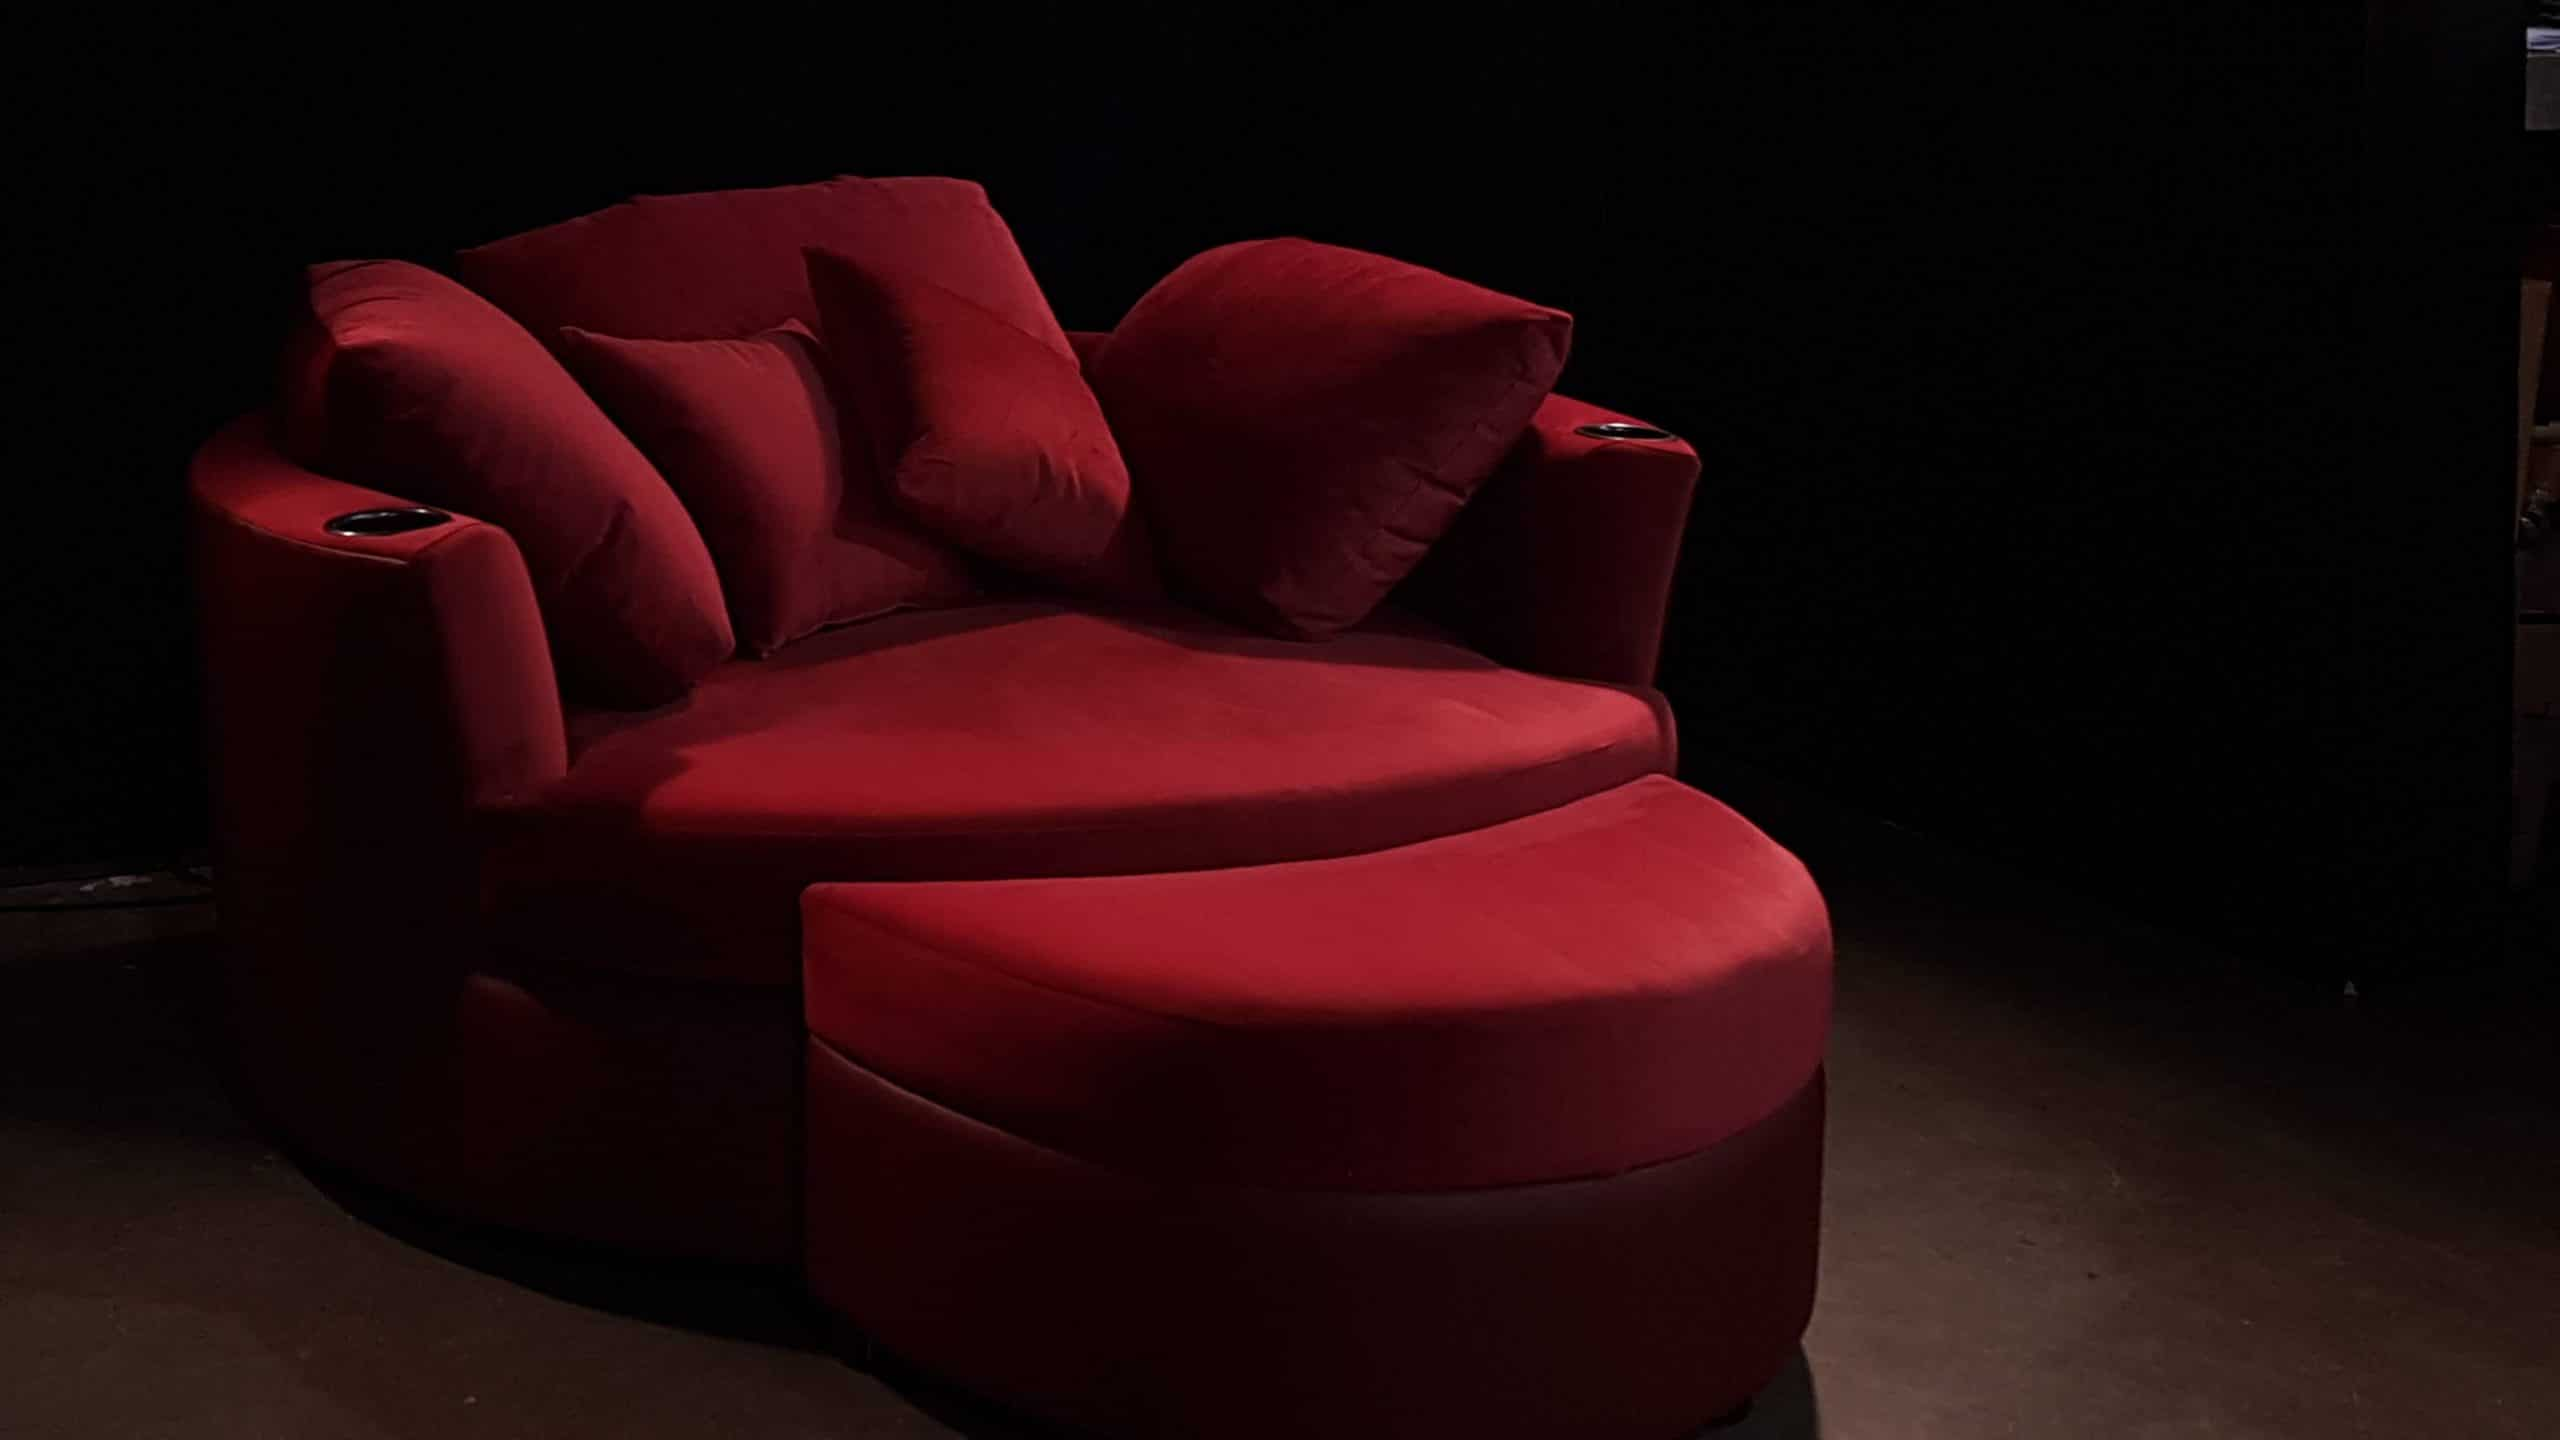 Design Couch Cuddle Couch Elite Home Theater Seating Build Your Own From 3 995